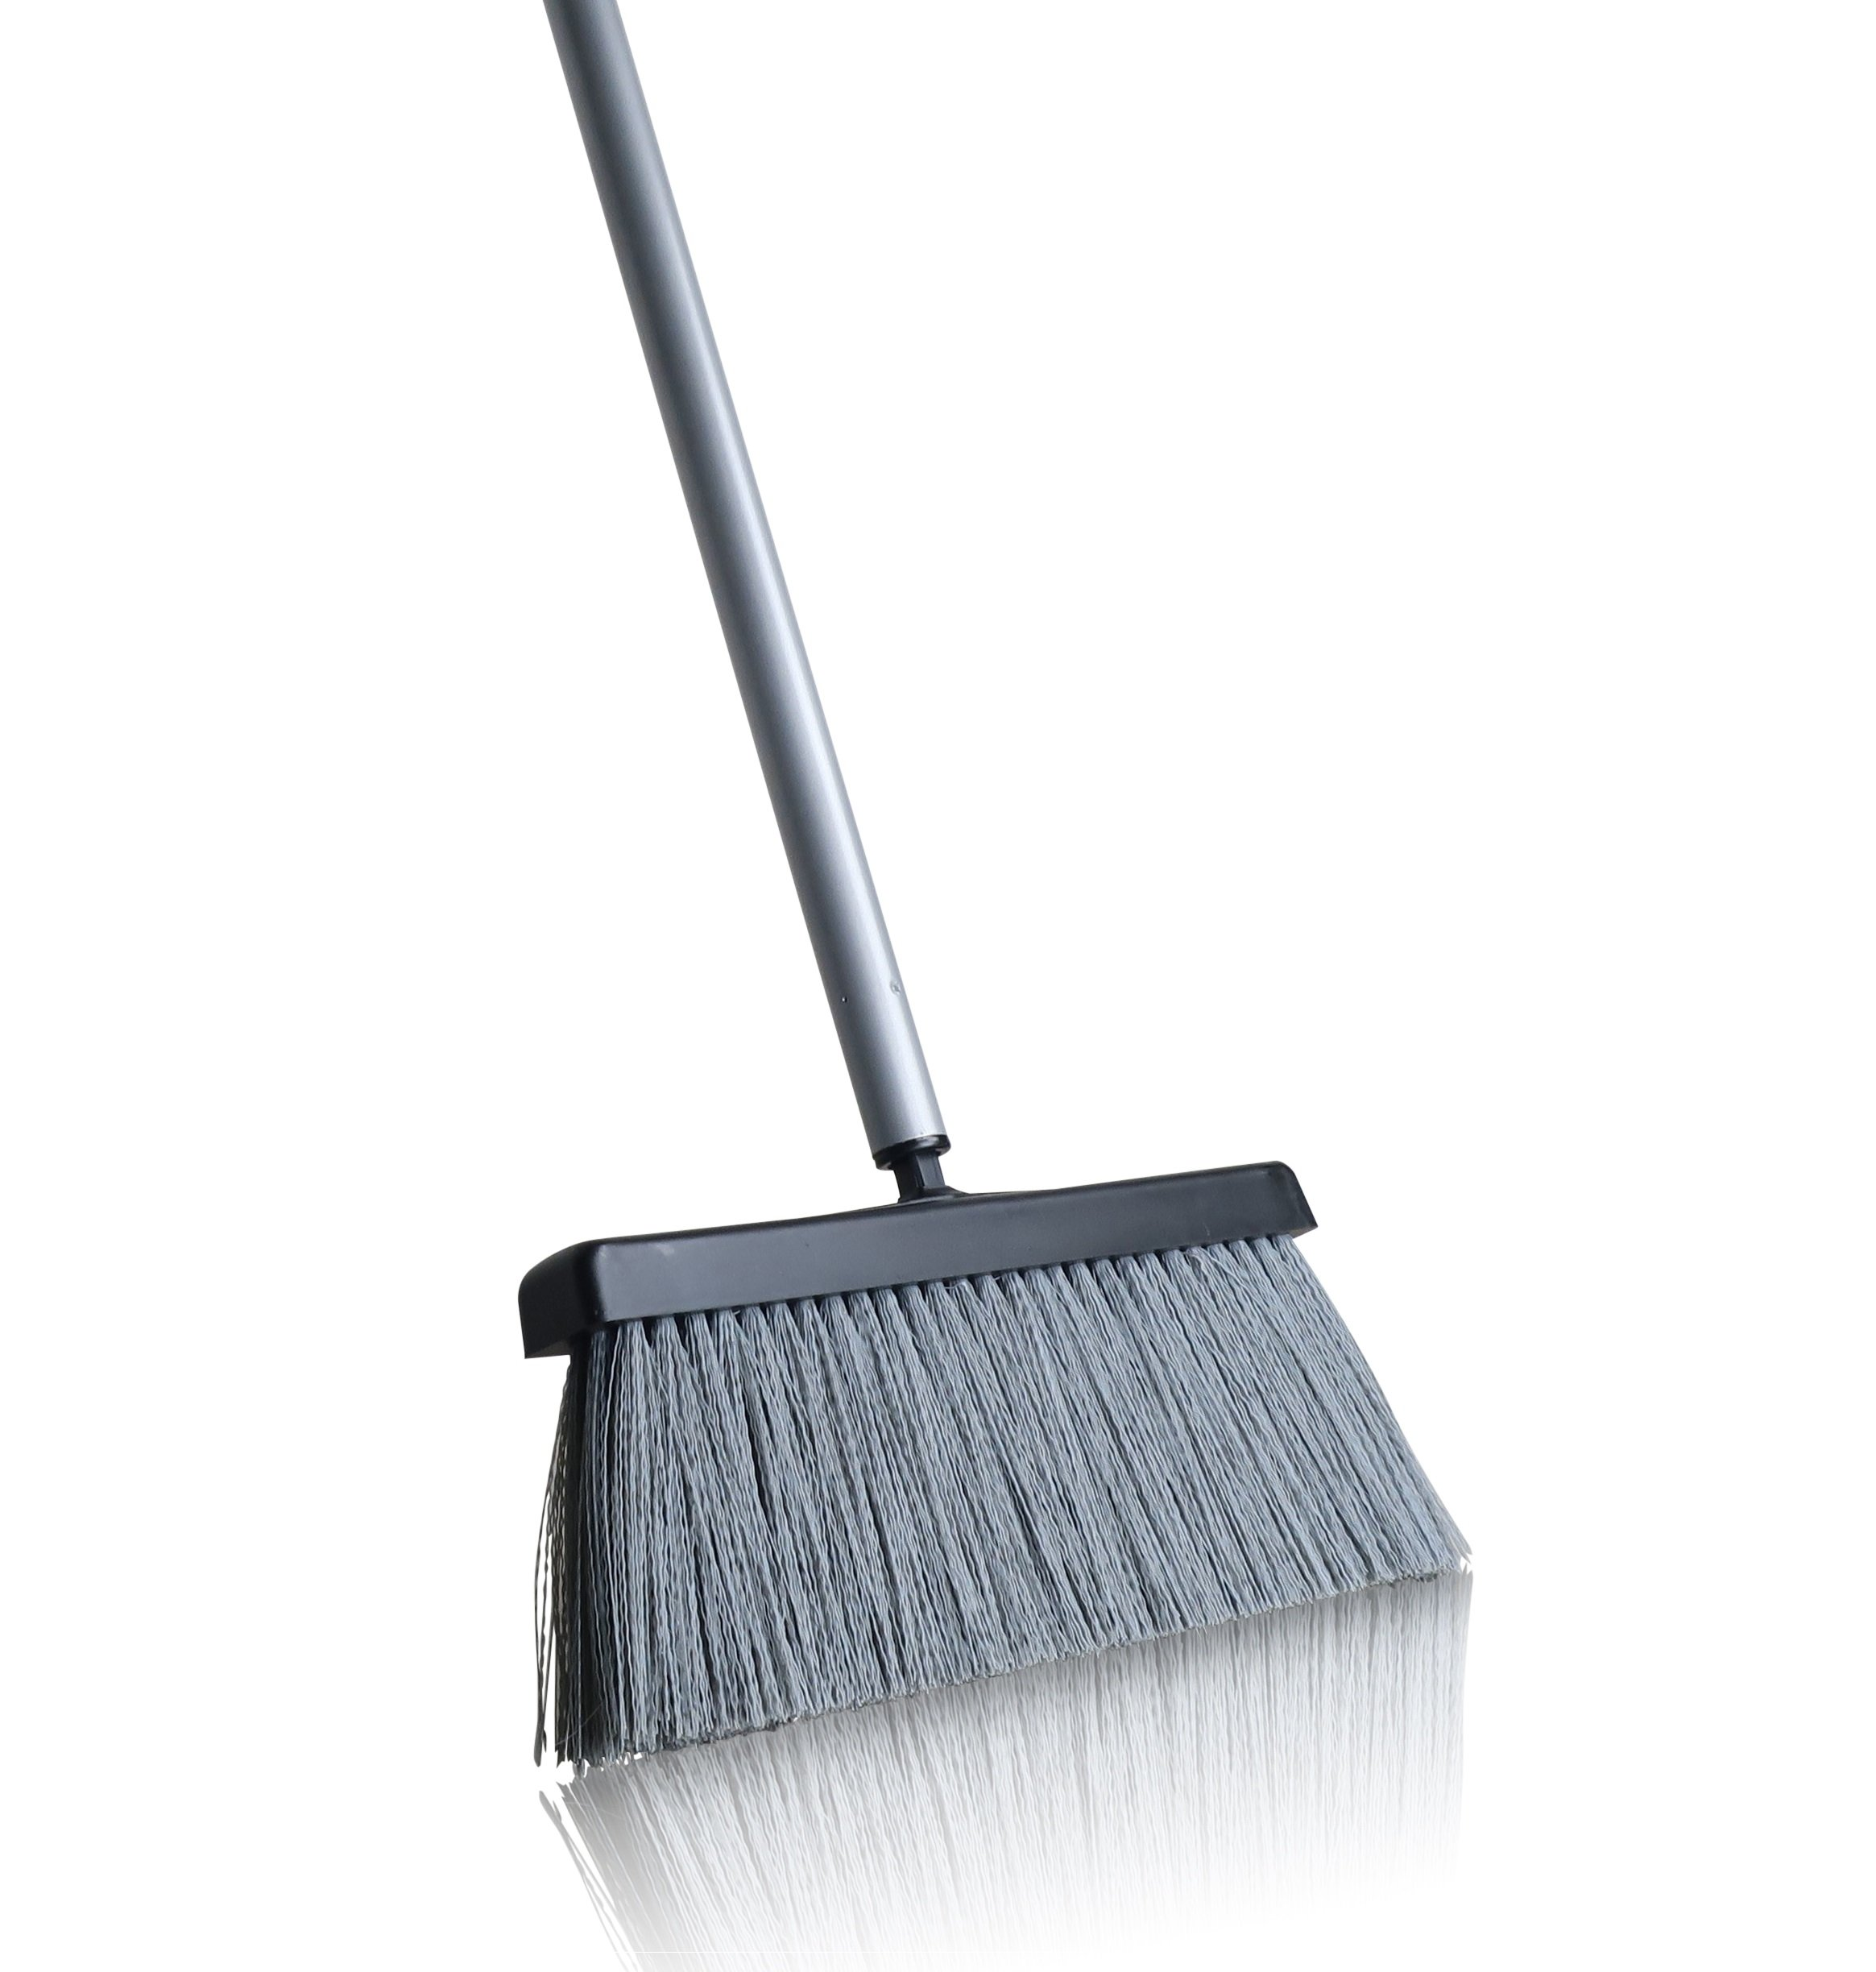 Fuller Brush Deep Reach Black Slender Complete Broom - 11'' Sweeping Path - Gathers Large Debris & Fine Particles - Low Profile for Easy Reach - 48'' Steel Handle by Fuller Brush